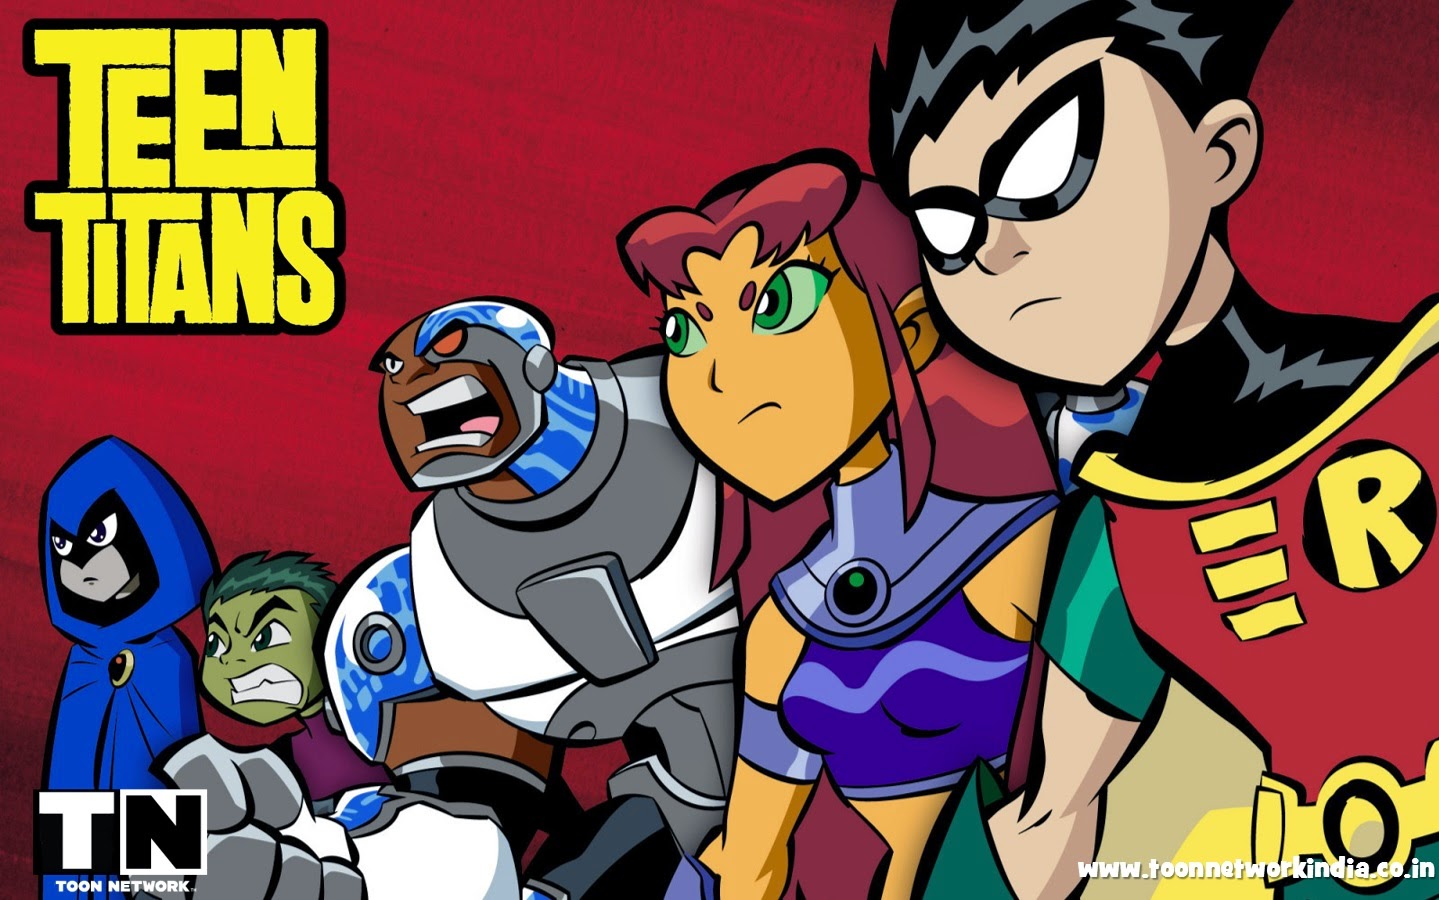 Teen Titans Season 4 Episodes